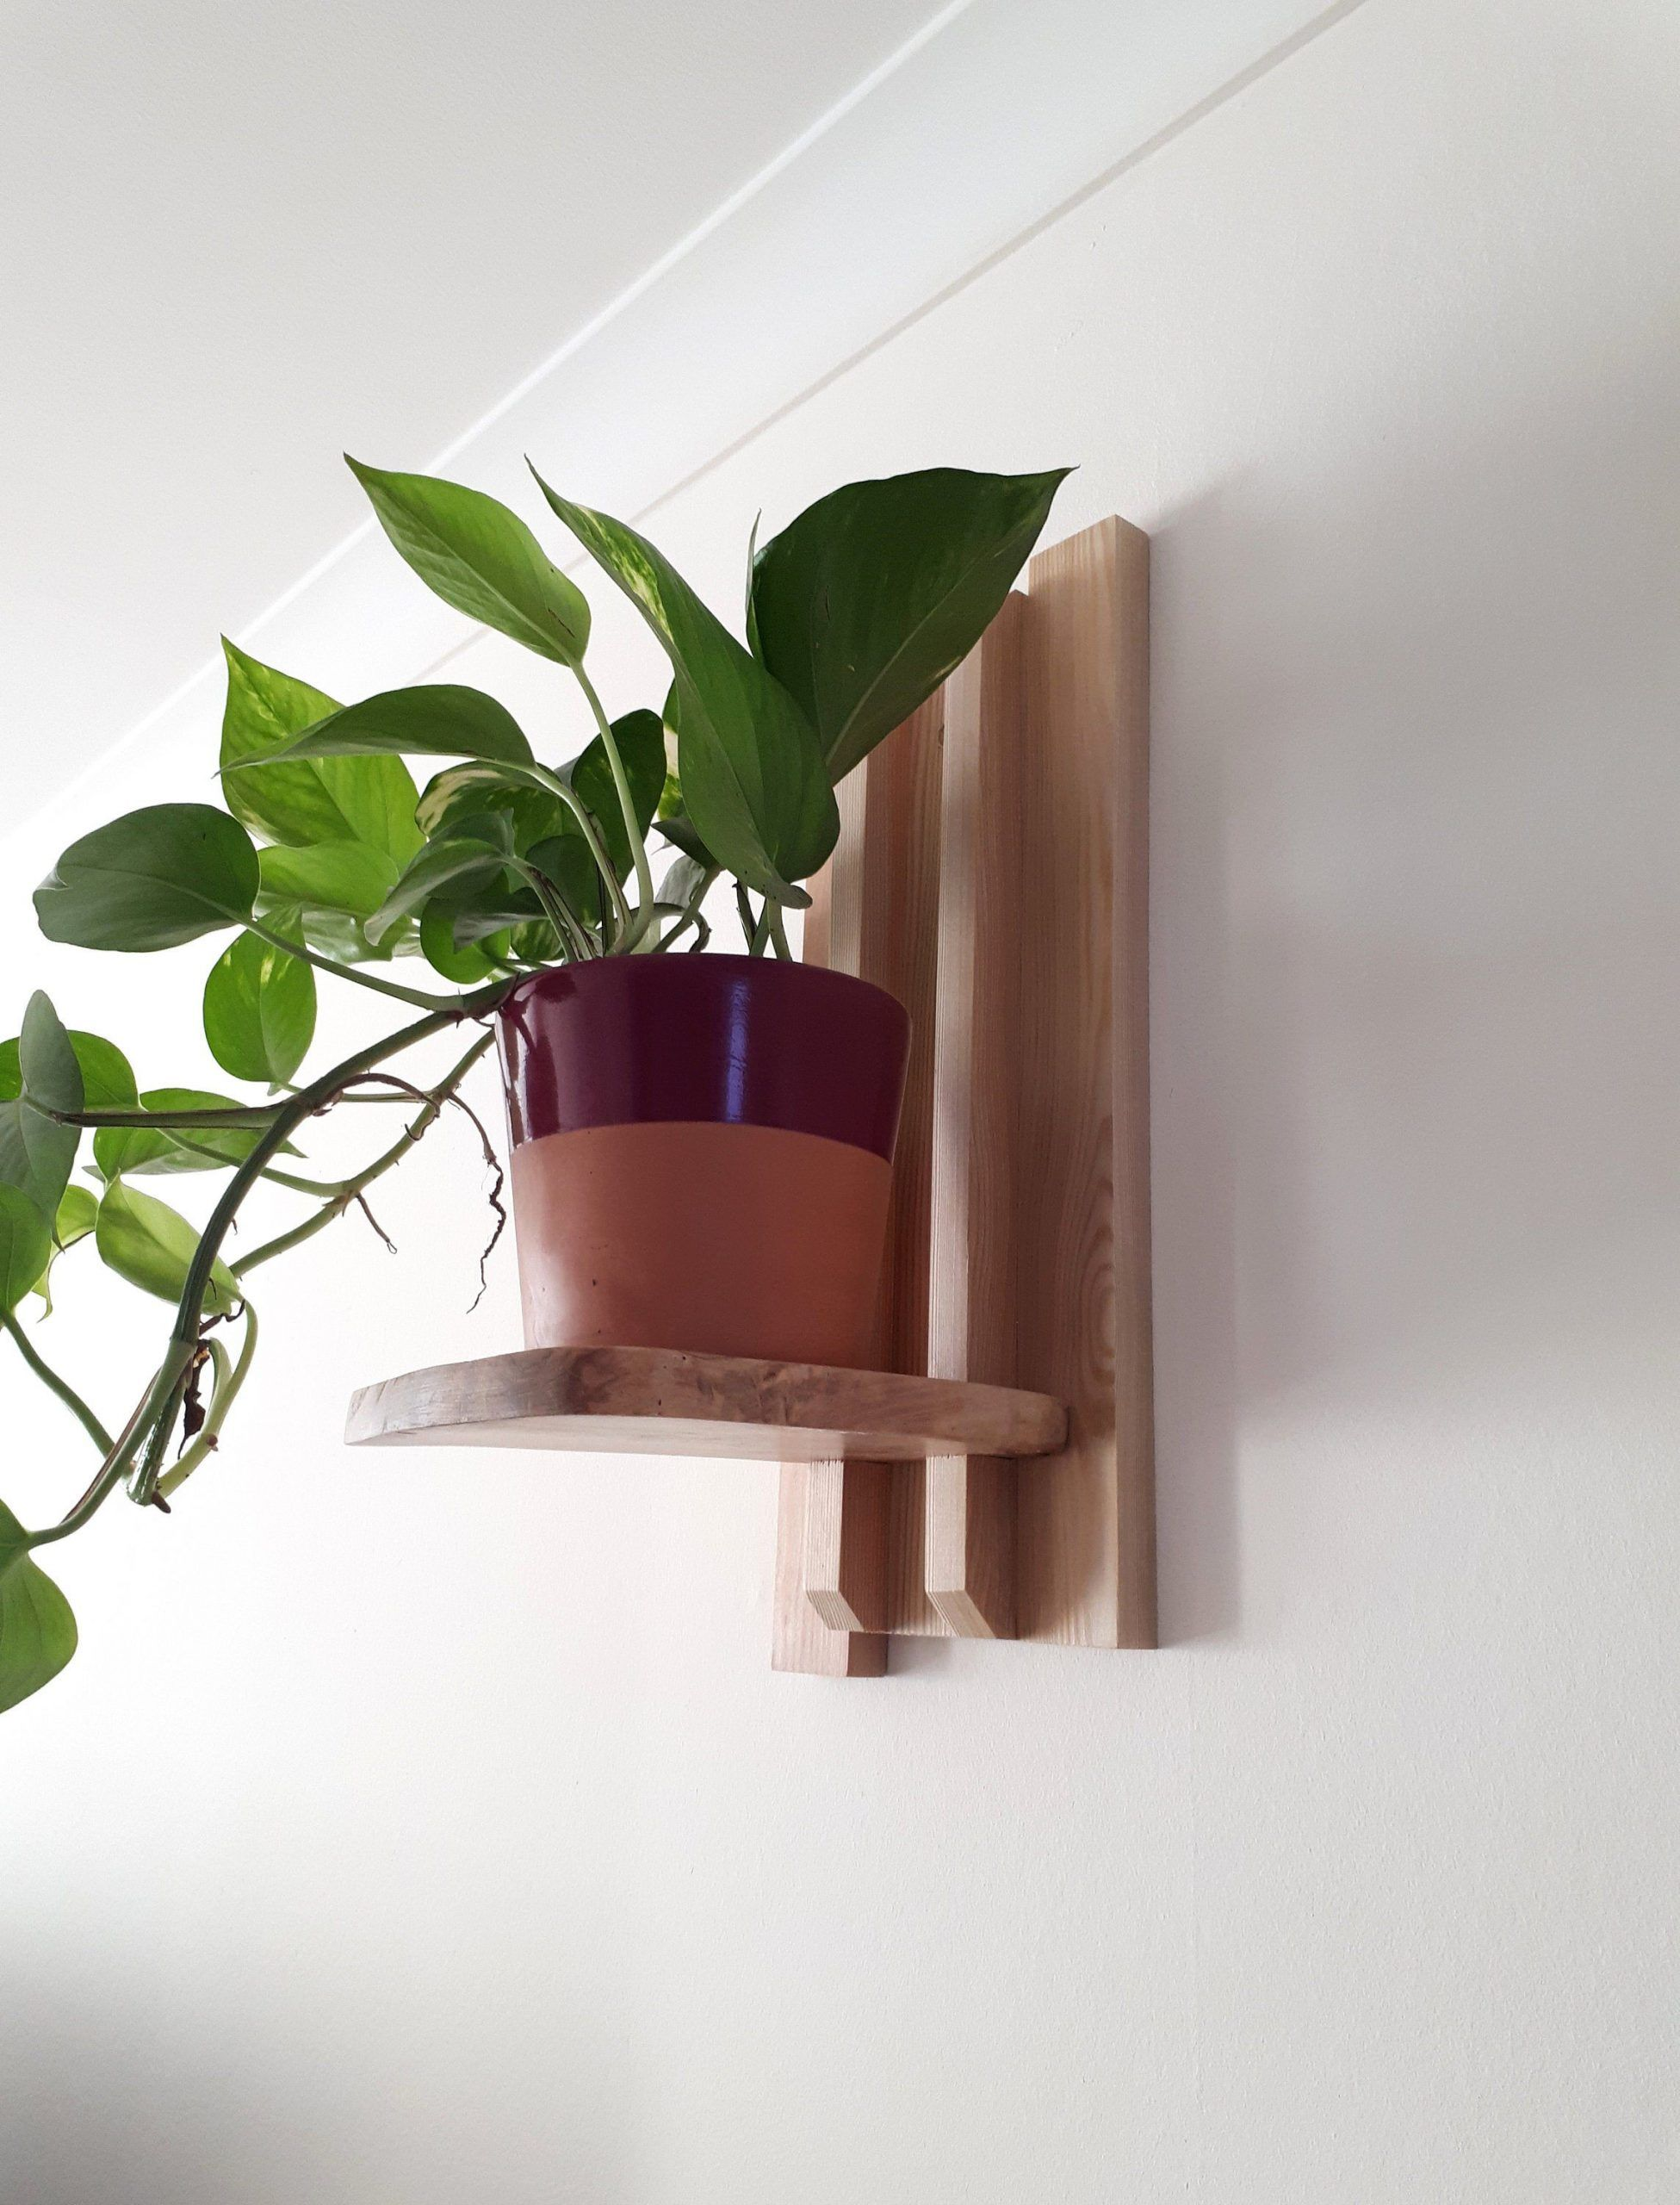 Wall Planter Indoor Made Of Wood Hanging Plant Pot Planter Shelf Wall Mounted Planter Lake House In 2020 Wall Planters Indoor Wall Mounted Planters Hanging Plants